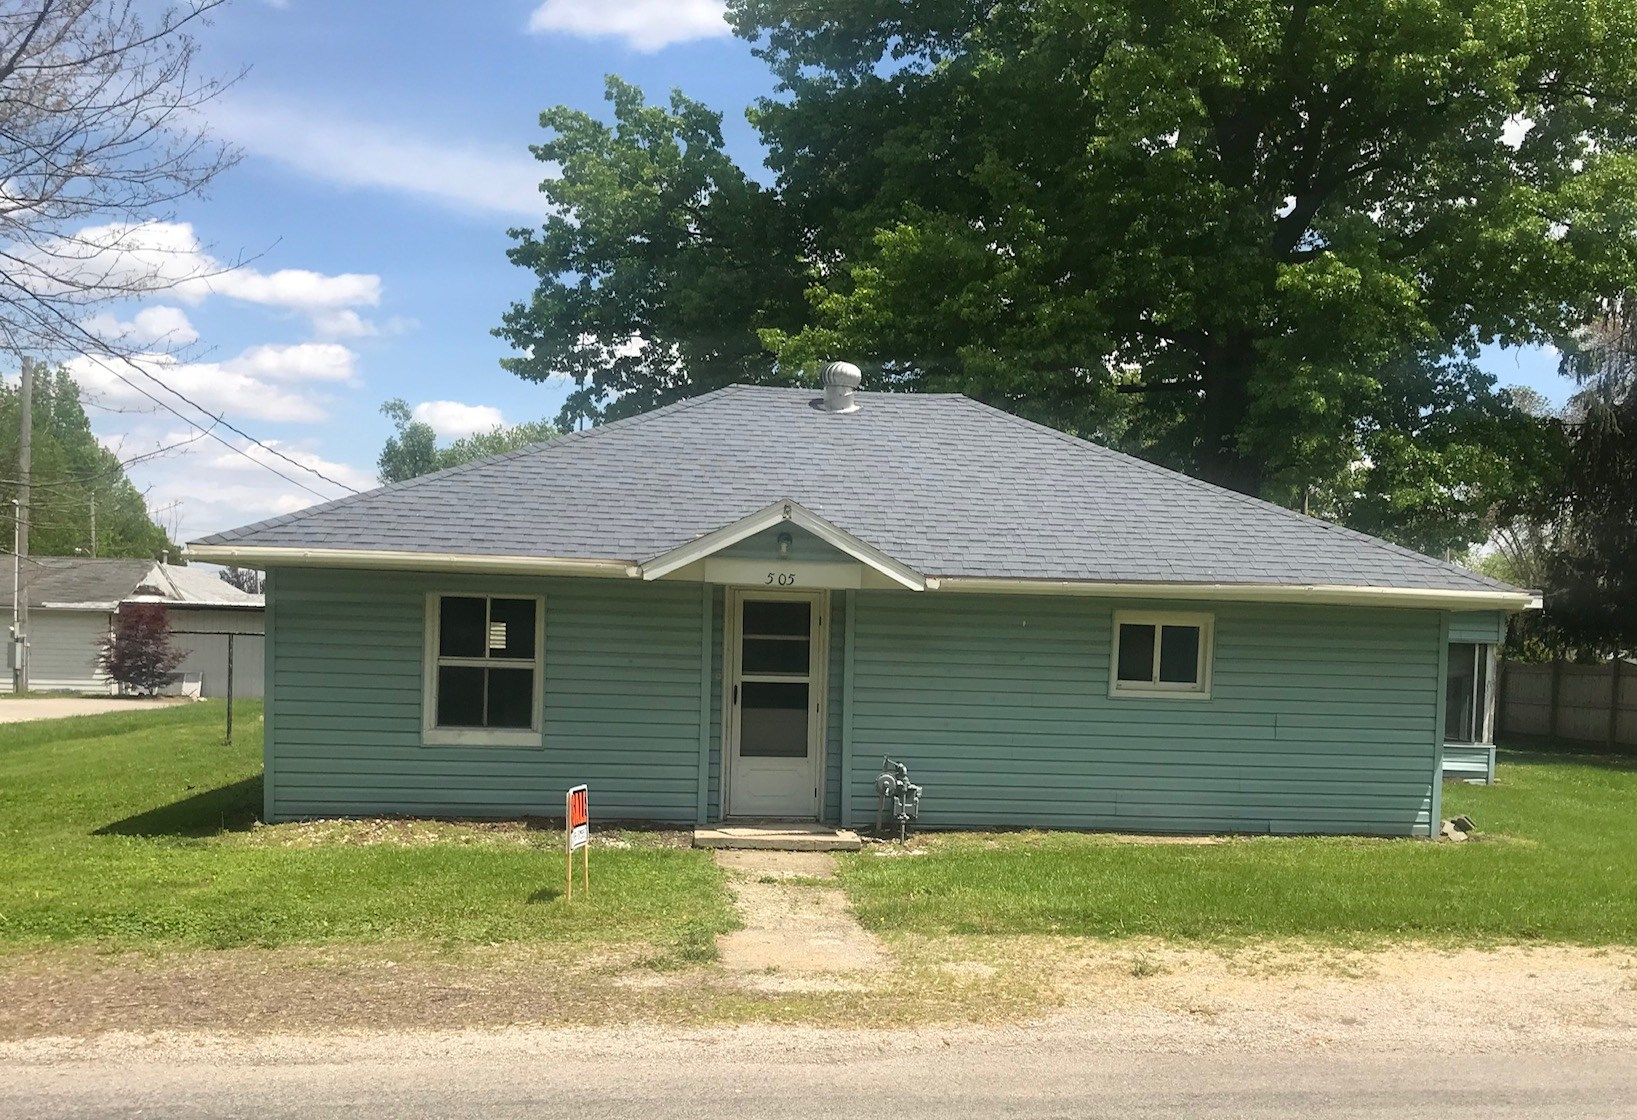 3 Bedroom, 1 Bath Home in Oblong, IL